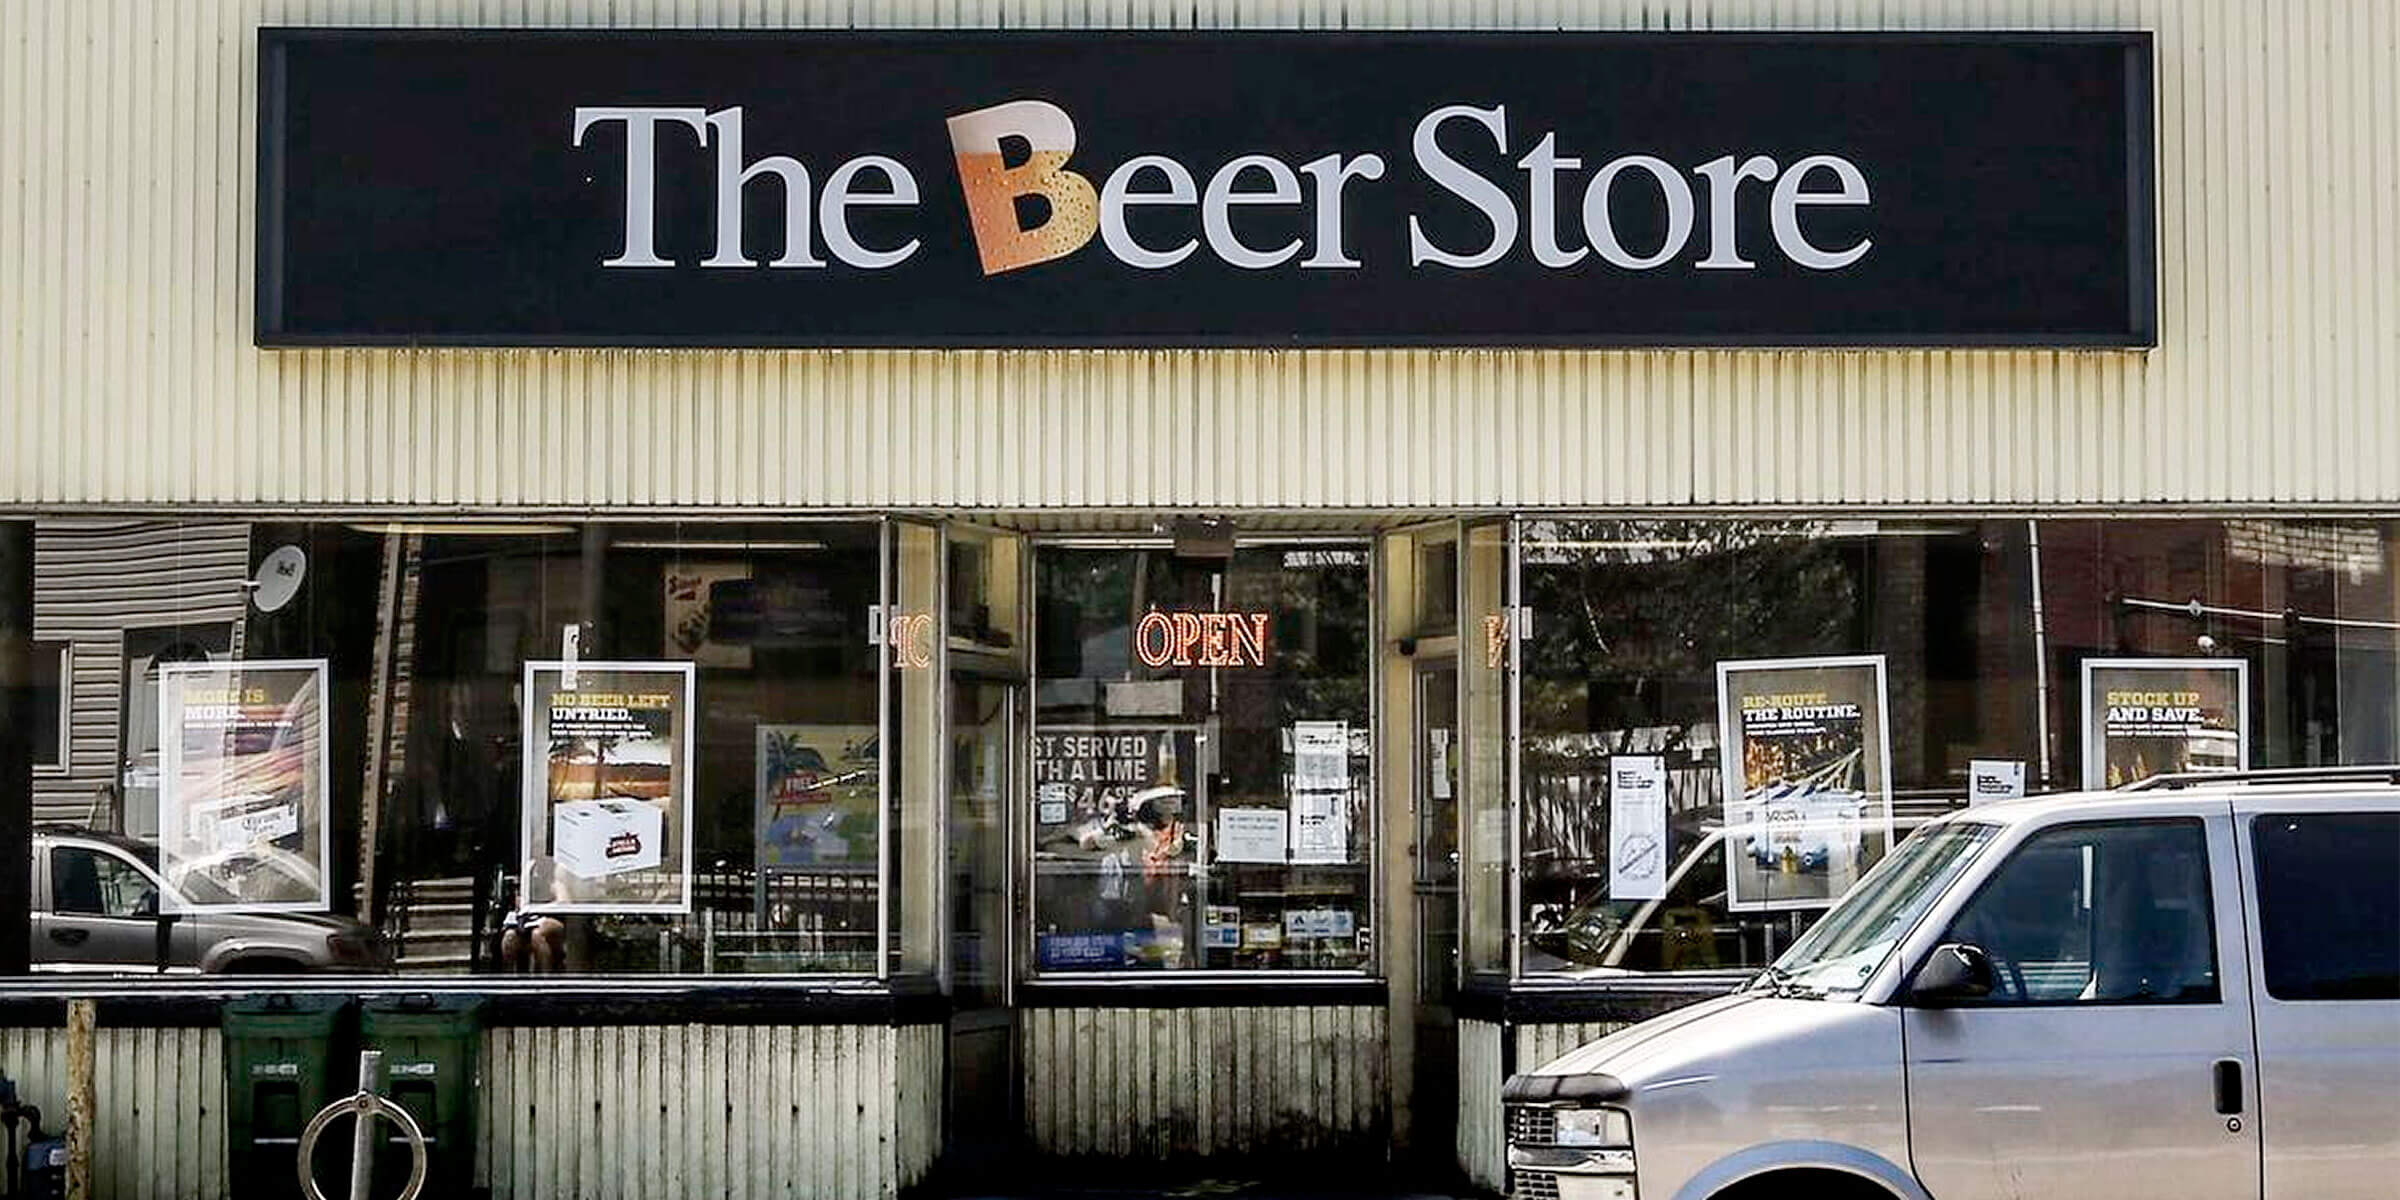 Under growing competition from grocery stores and corner store beers, The Beer Store suffered a $46.5 million operating loss last year.